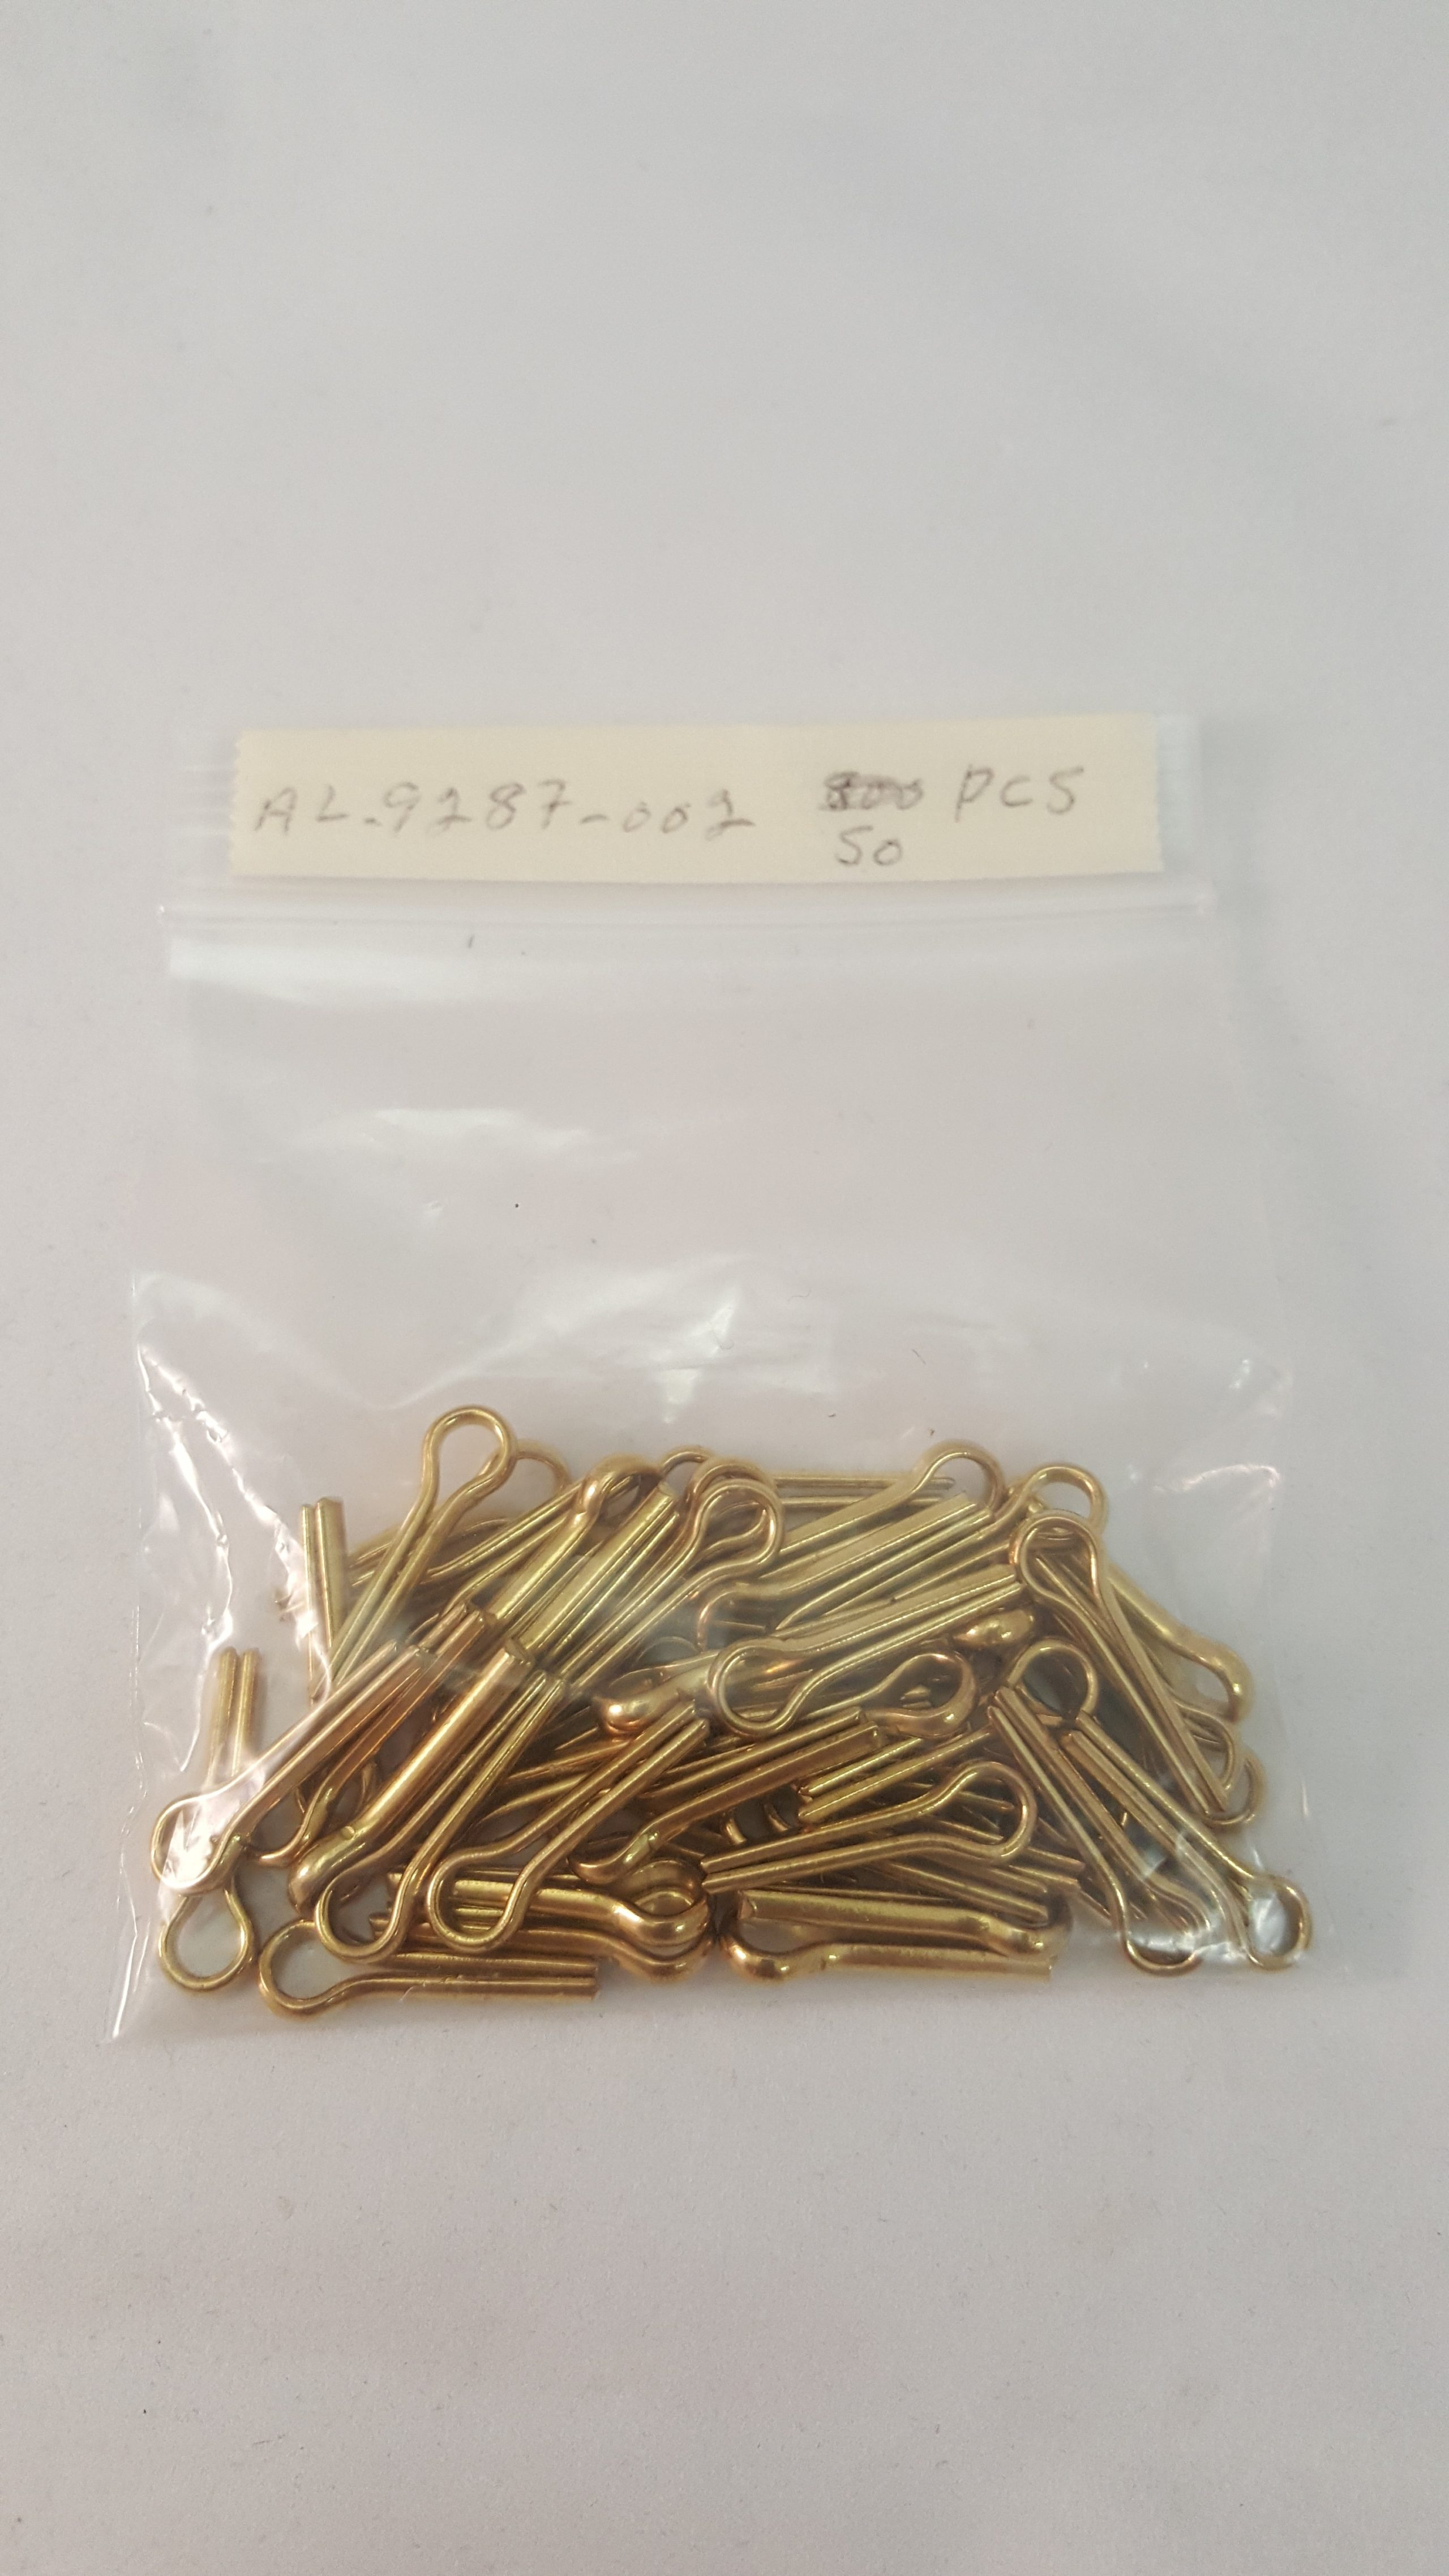 American Locker 50 pack of Cotter Pins